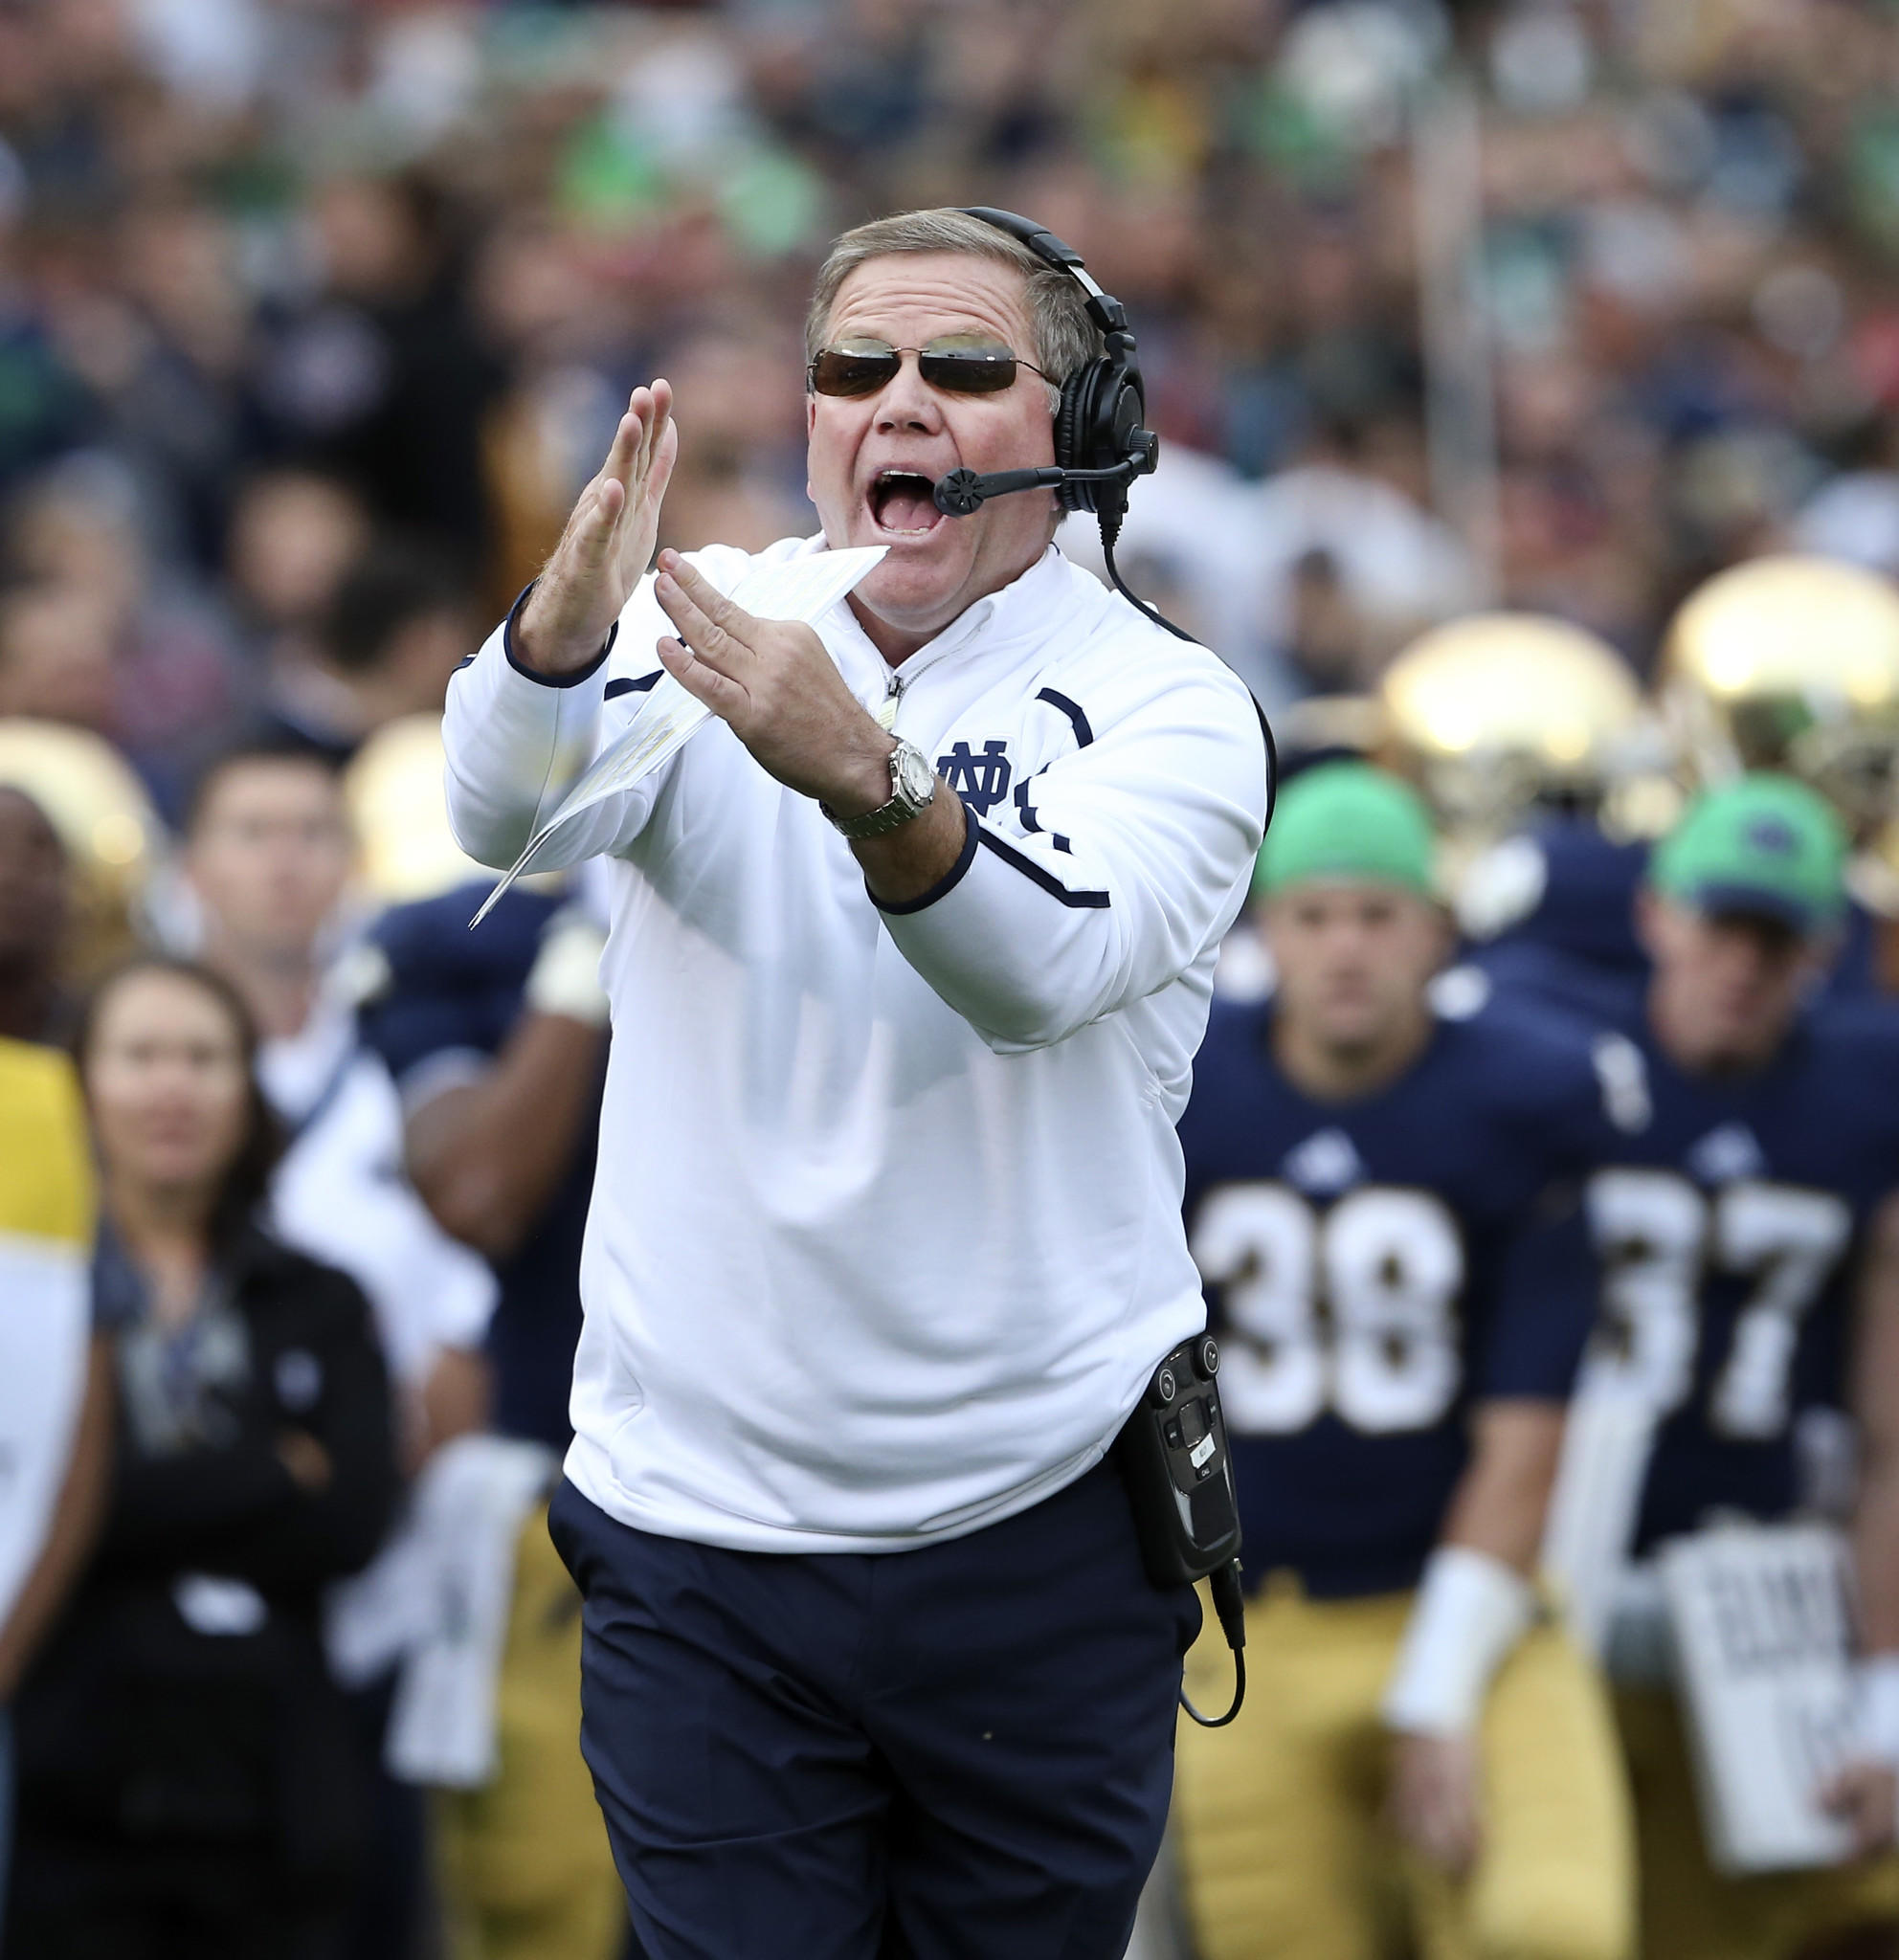 Notre Dame Fighting Irish coach Brian Kelly, calls time out just before the end of the second quarter against the Michigan State Spartans, at Notre Dame Stadium, in South Bend, Ind., on Saturday Sept. 21, 2013.